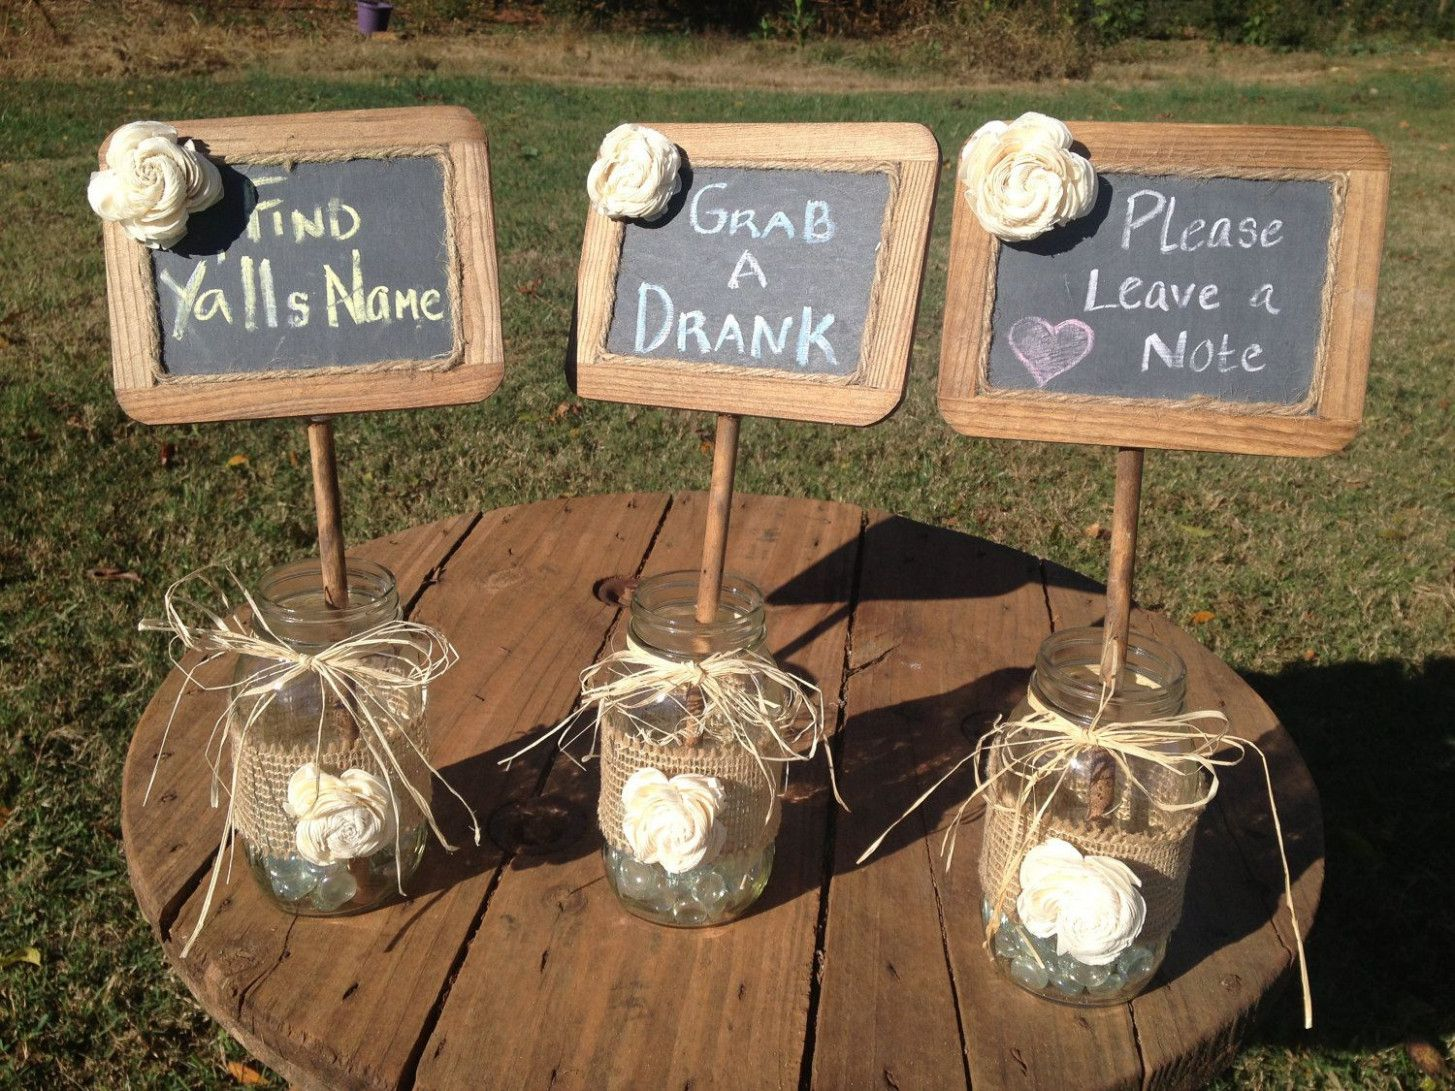 rustic summer wedding on a budget | wedding | pinterest | wedding